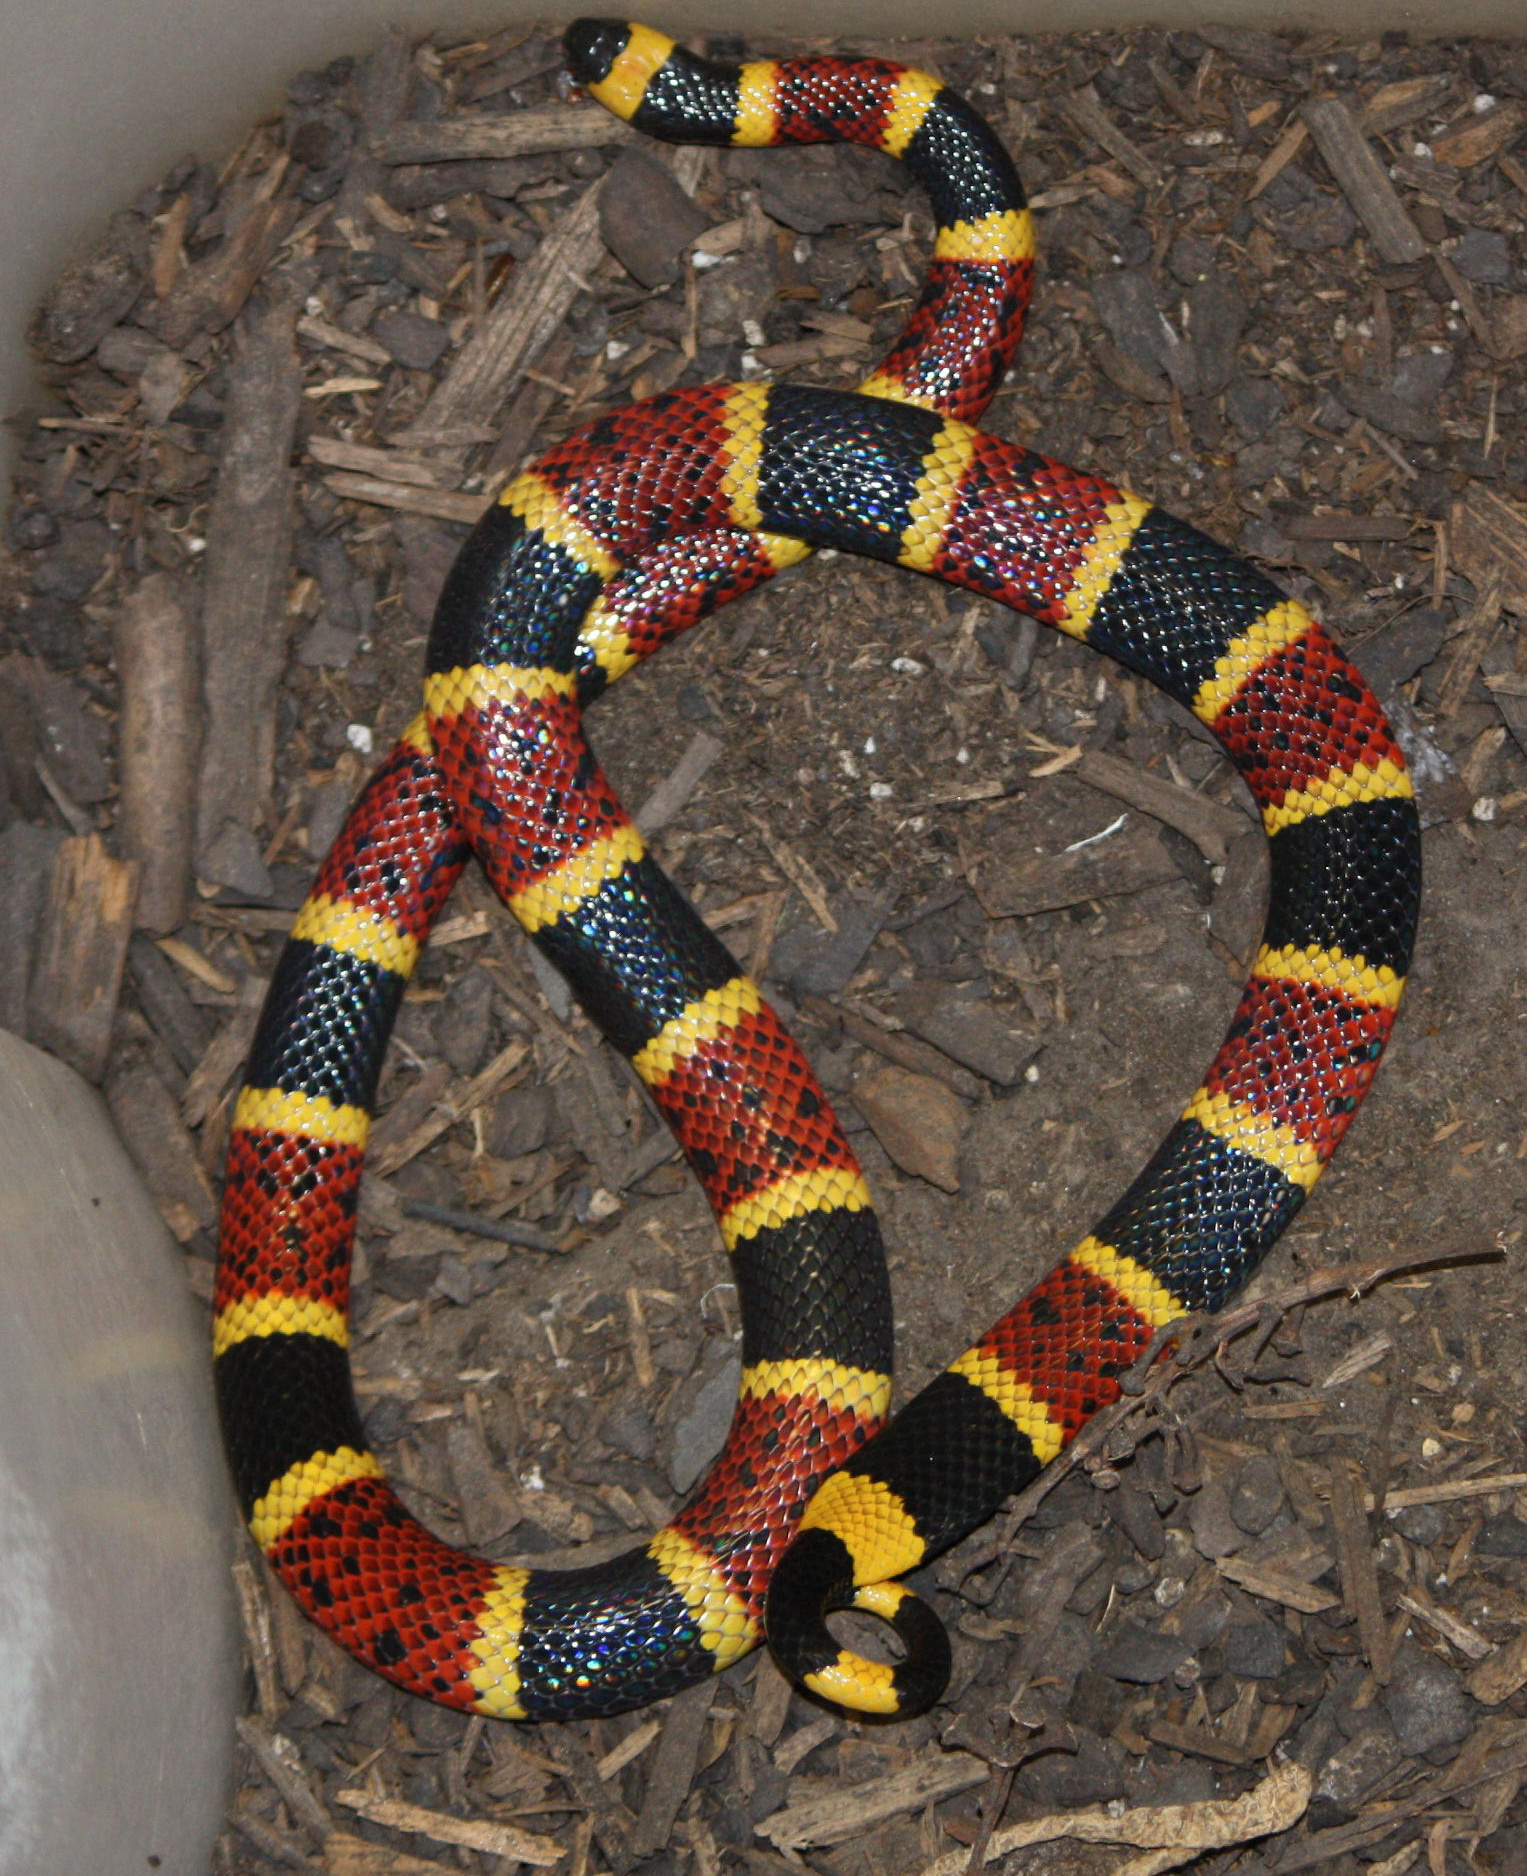 Slithering Reptiles Need Their Space To Keep Pest